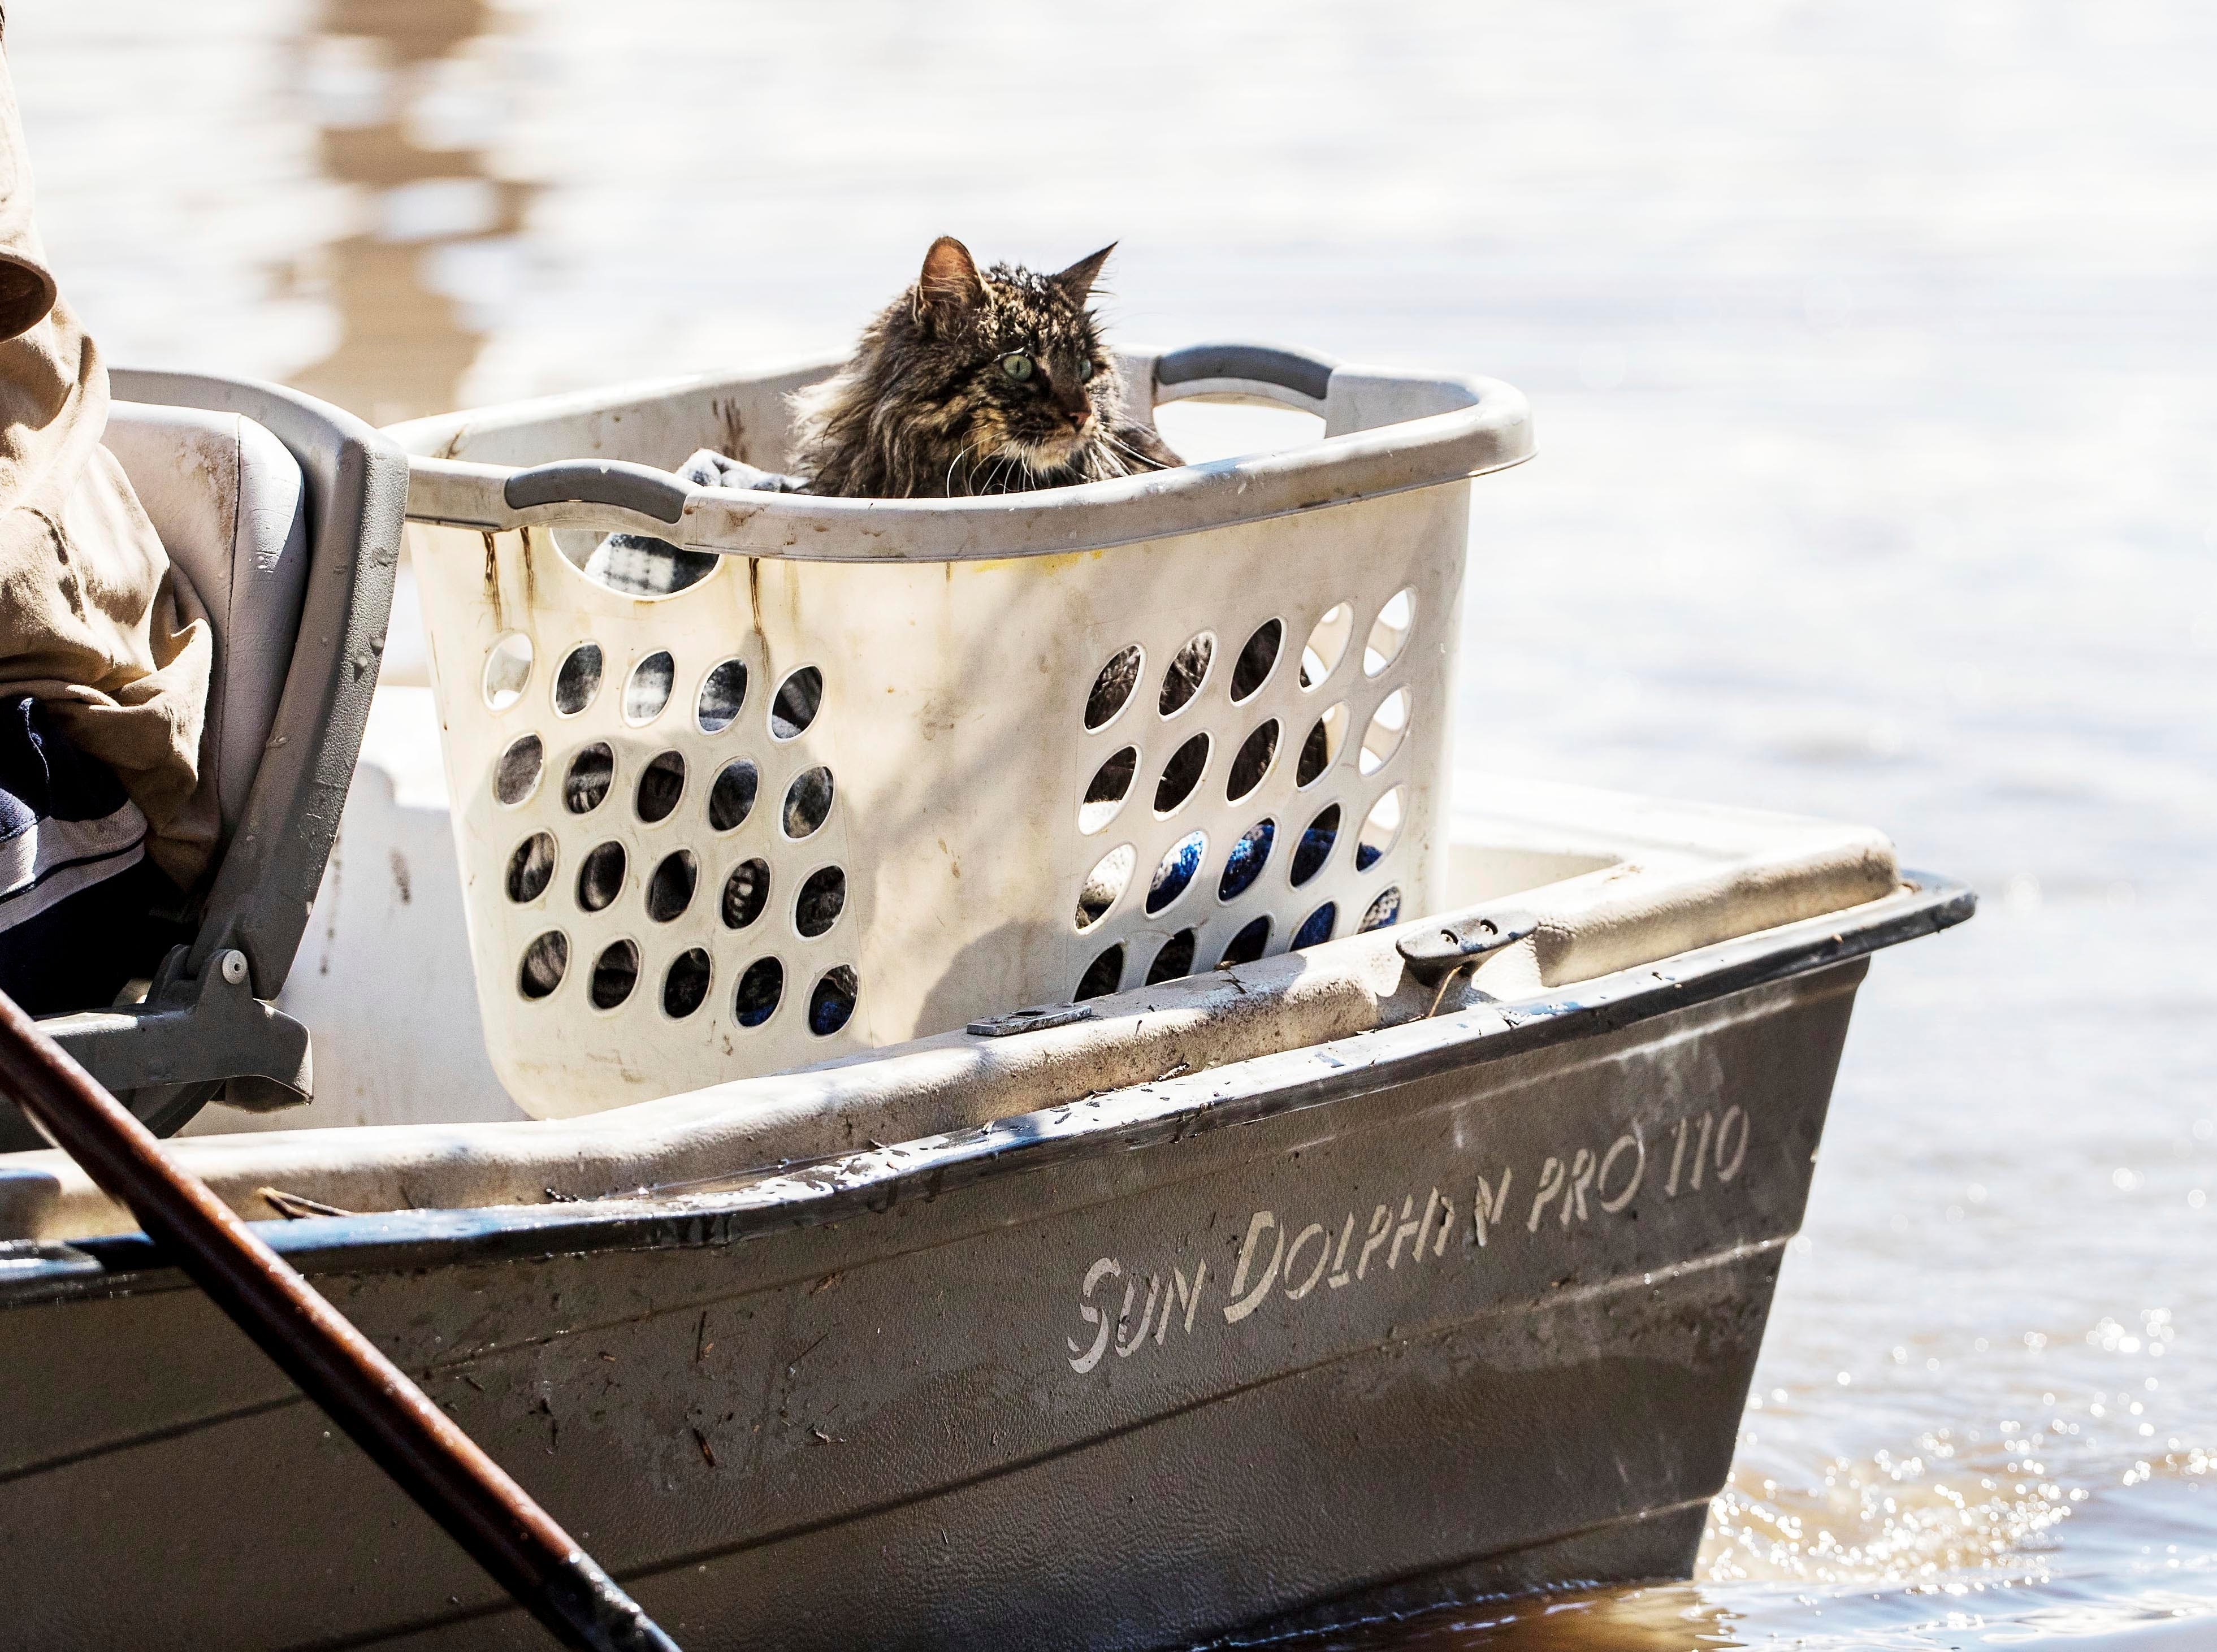 Bob the cat gets a boat ride after being rescued by Treyton Gubser and Daniel Gubser Wednesday, March 20, 2019, in Hamburg, Iowa. As some communities along the Missouri River start to shift their focus to flood recovery after a late-winter storm, residents in two Iowa cities are still in crisis mode because their treatment plants have shut down and they lack fresh water. (Chris Machian/Omaha World-Herald via AP)